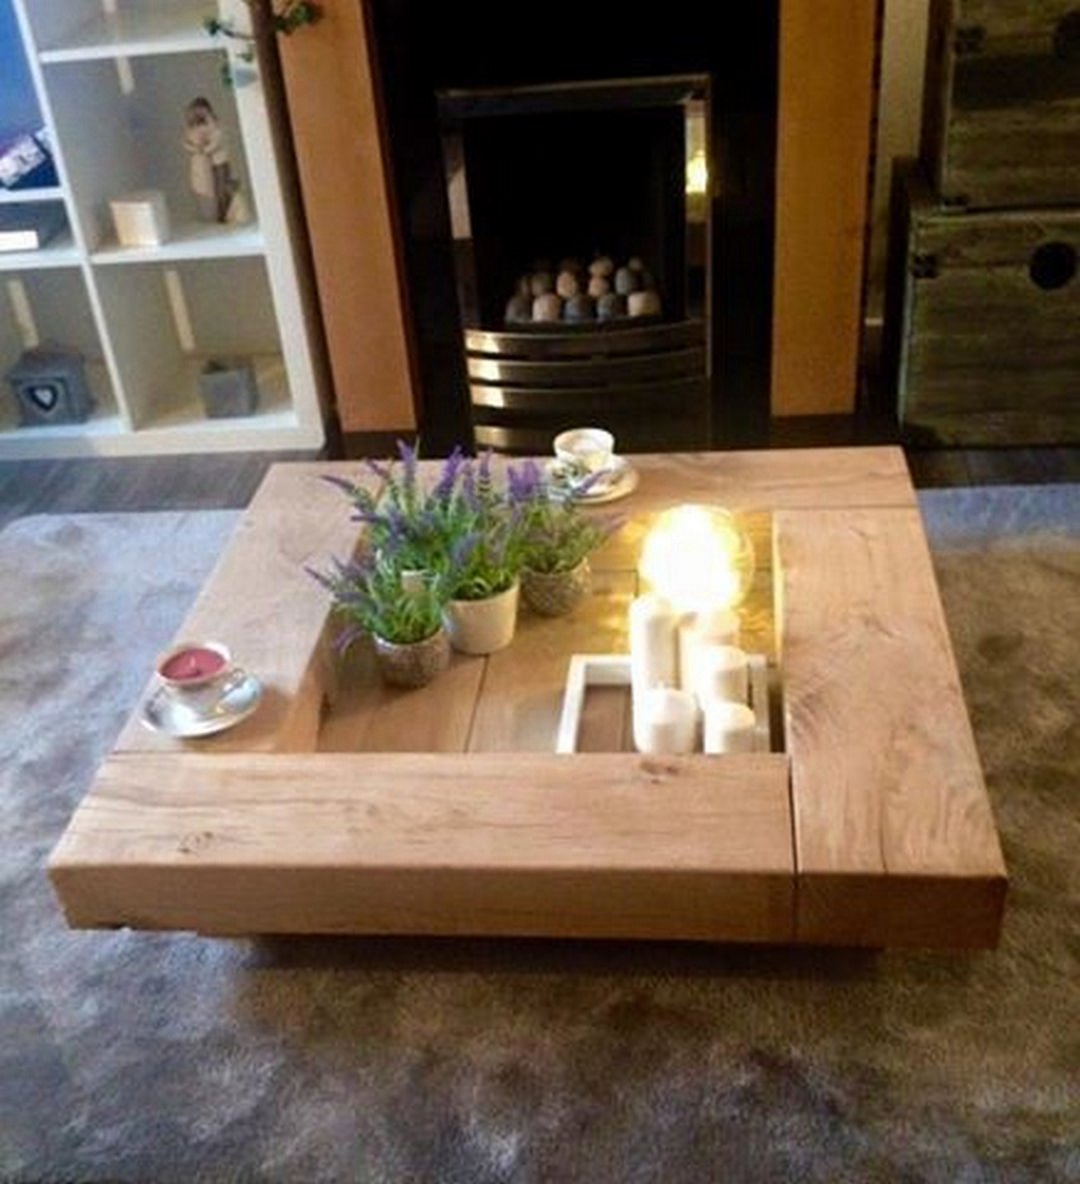 Modern Wooden Coffee Table Designs How To Decorate Your Coffee Table Design Like A Pro